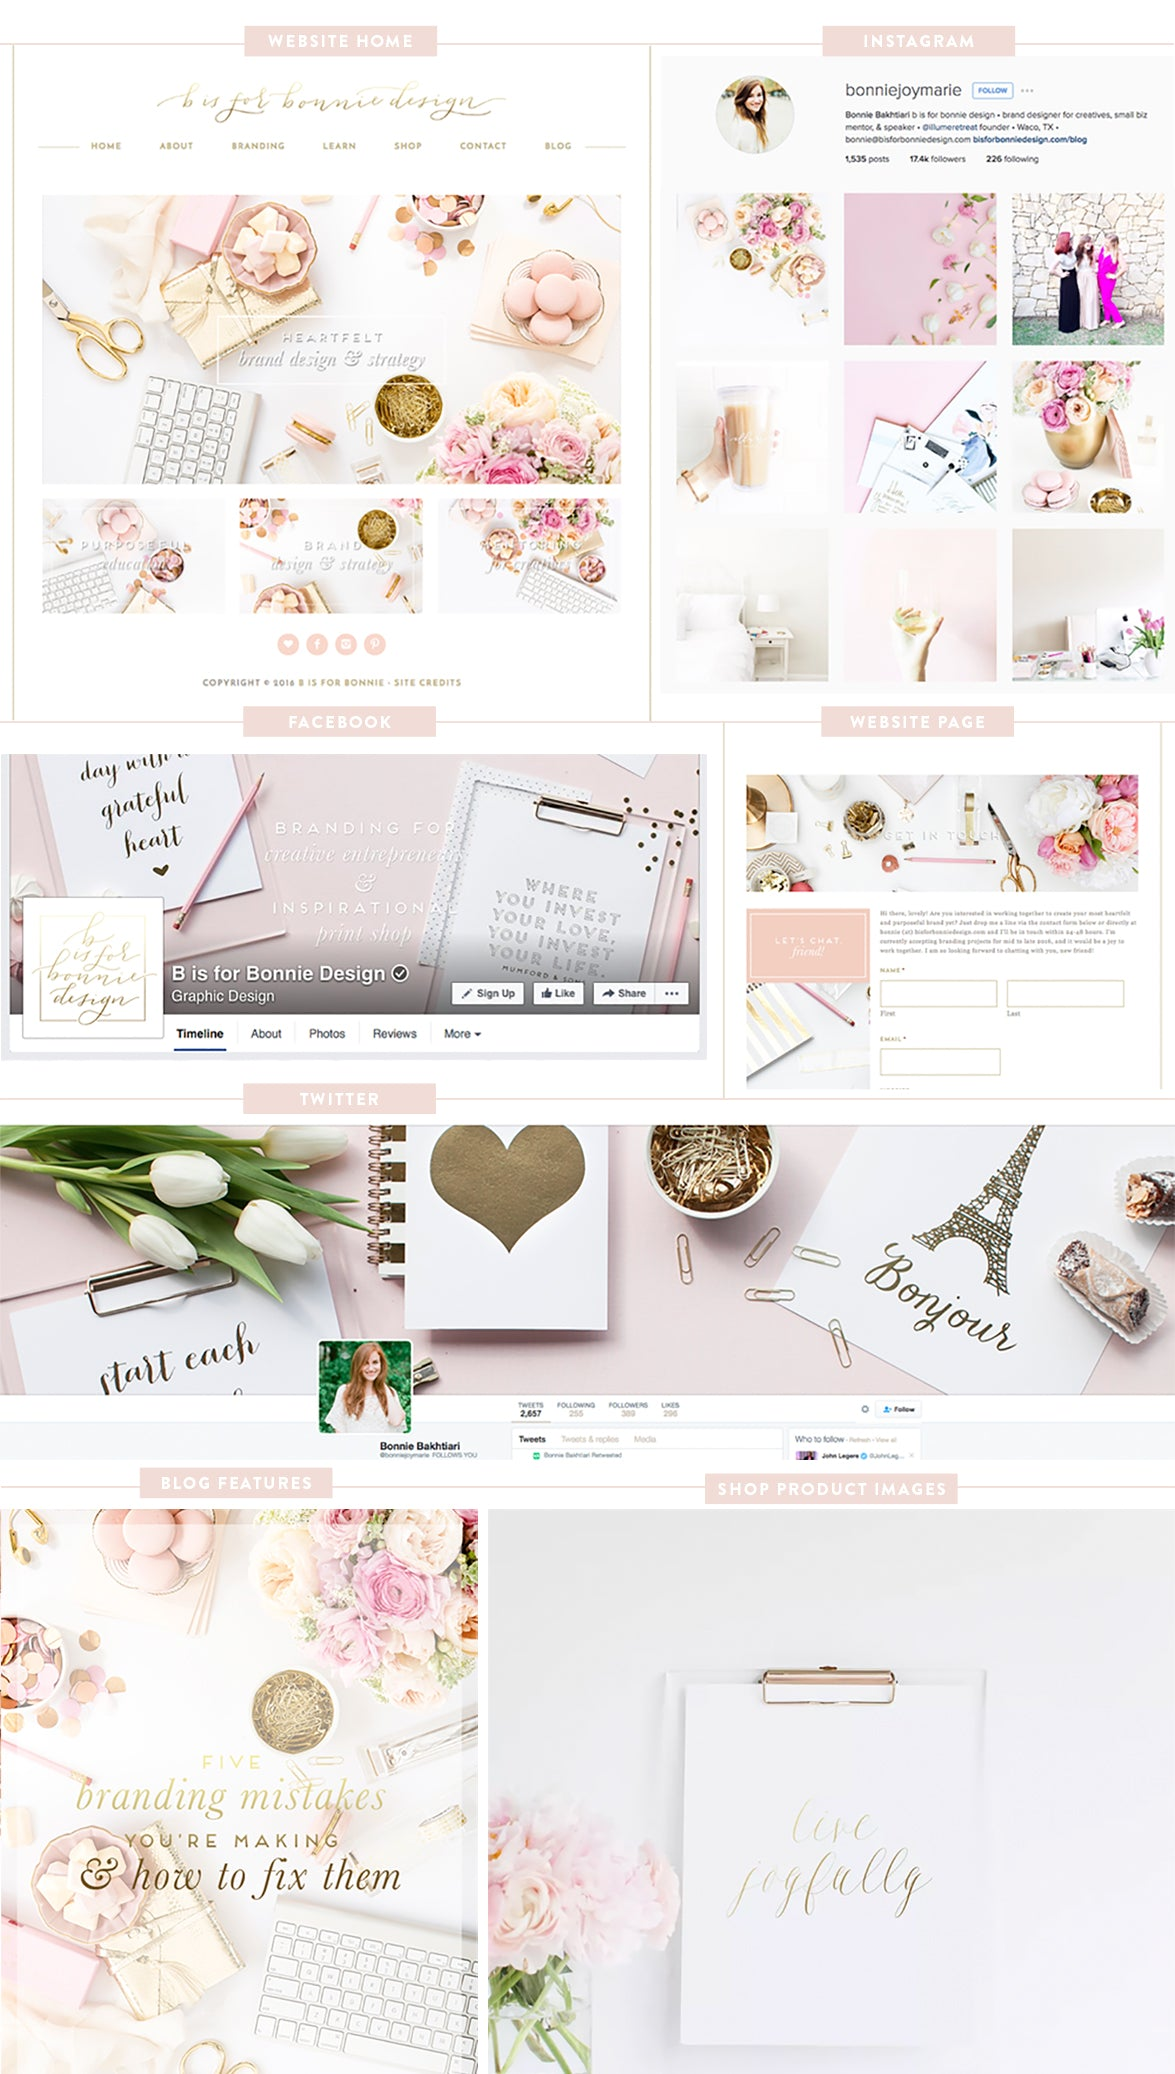 SC Stockshop | Styled stock photography for creative businesses by Shay Cochrane